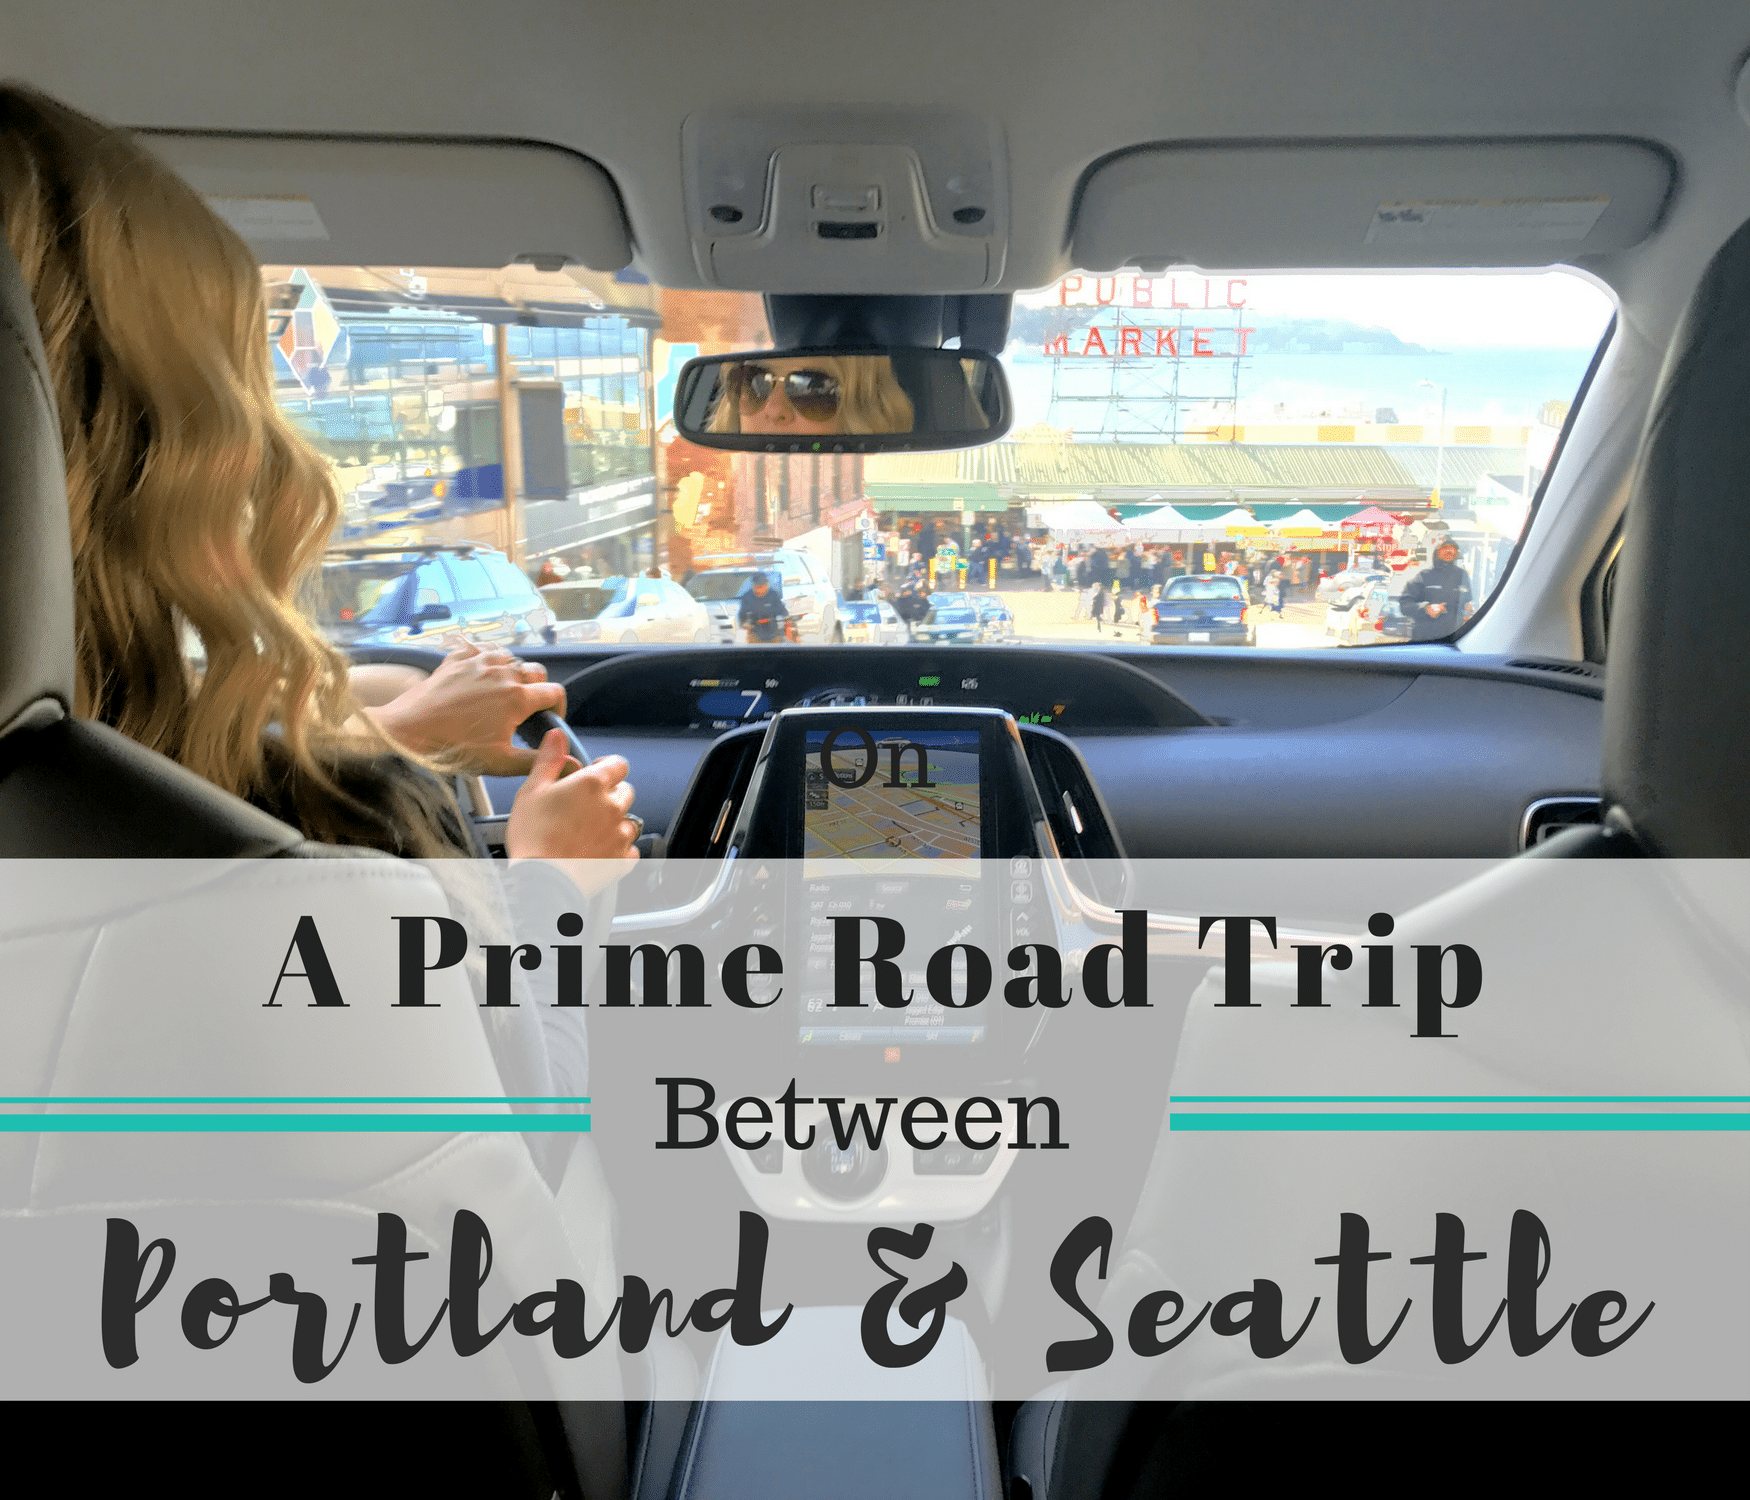 Road Trip: A Prime Road Trip Between Portland And Seattle